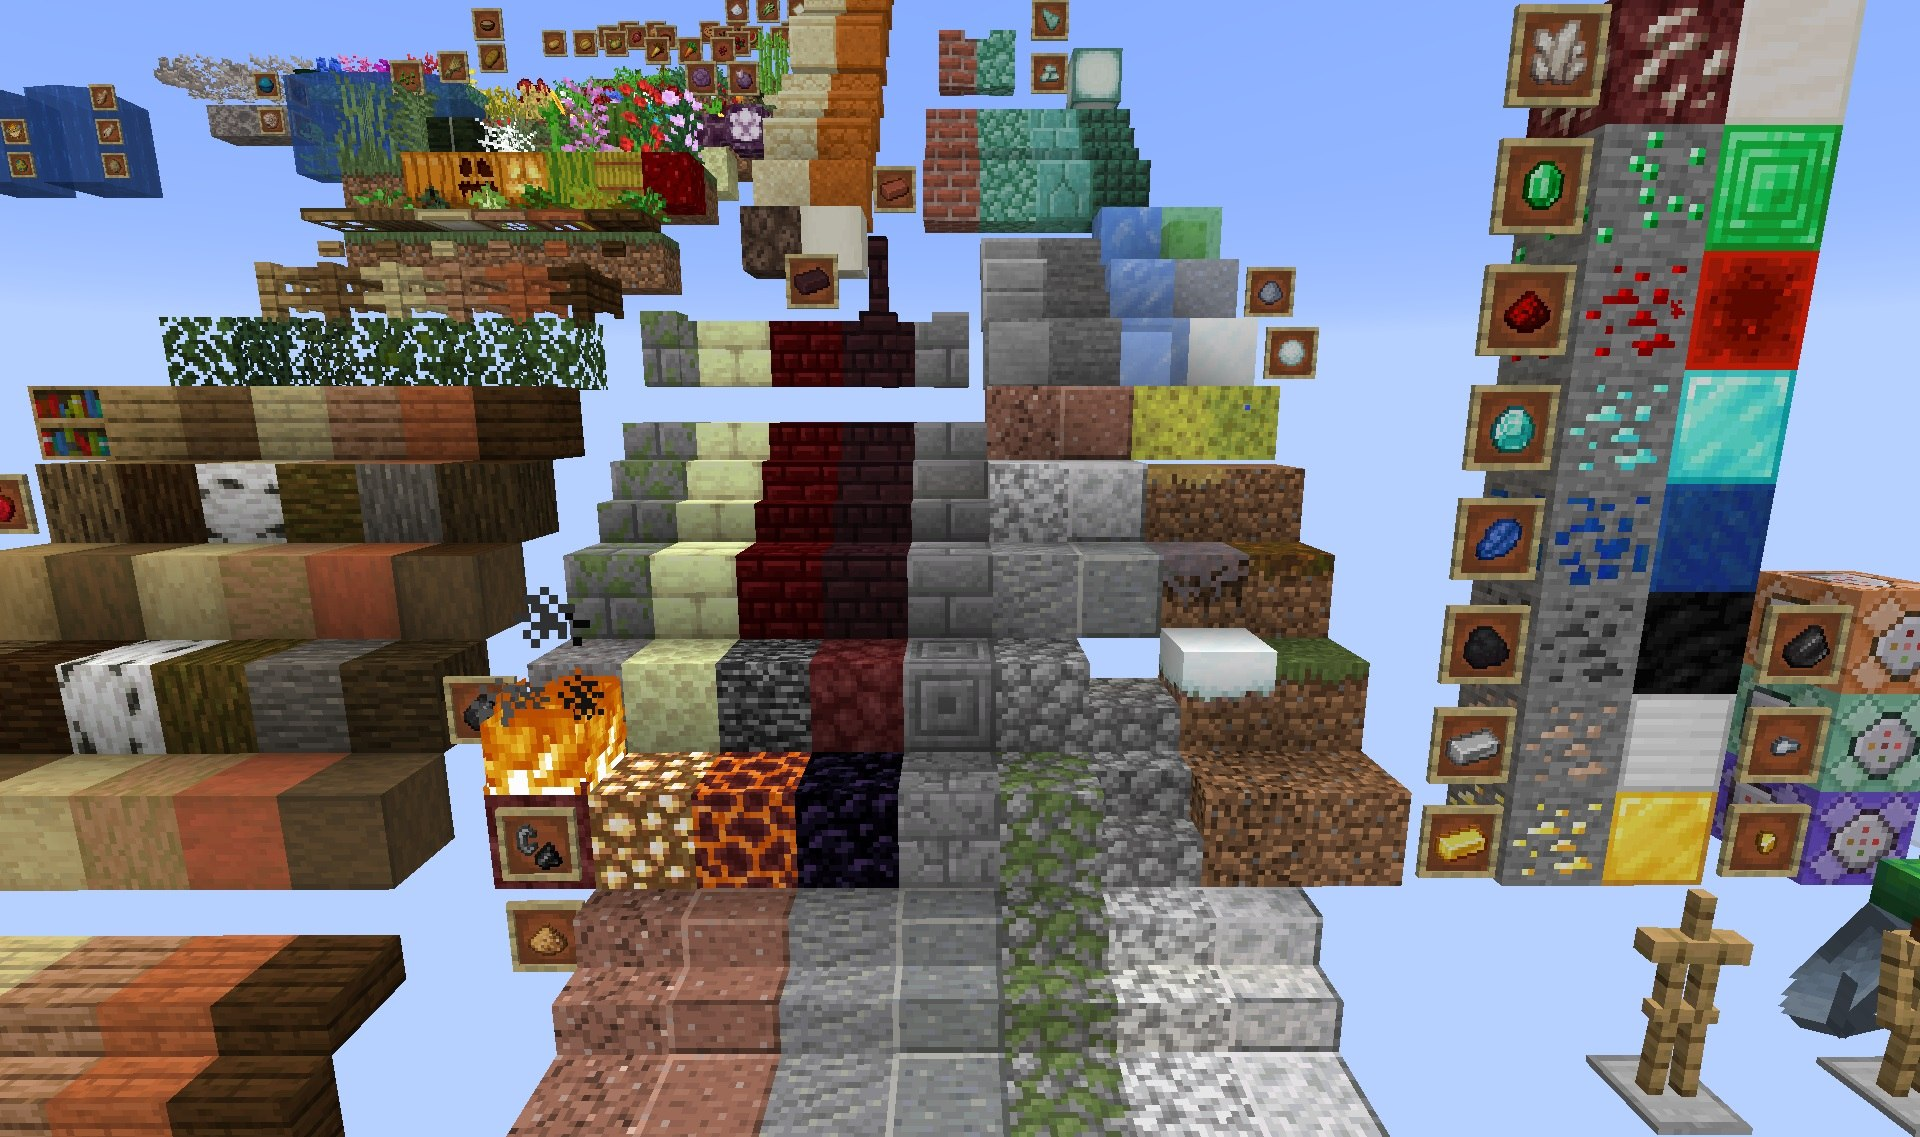 minecraft default 1.15.2 compare other resource packs